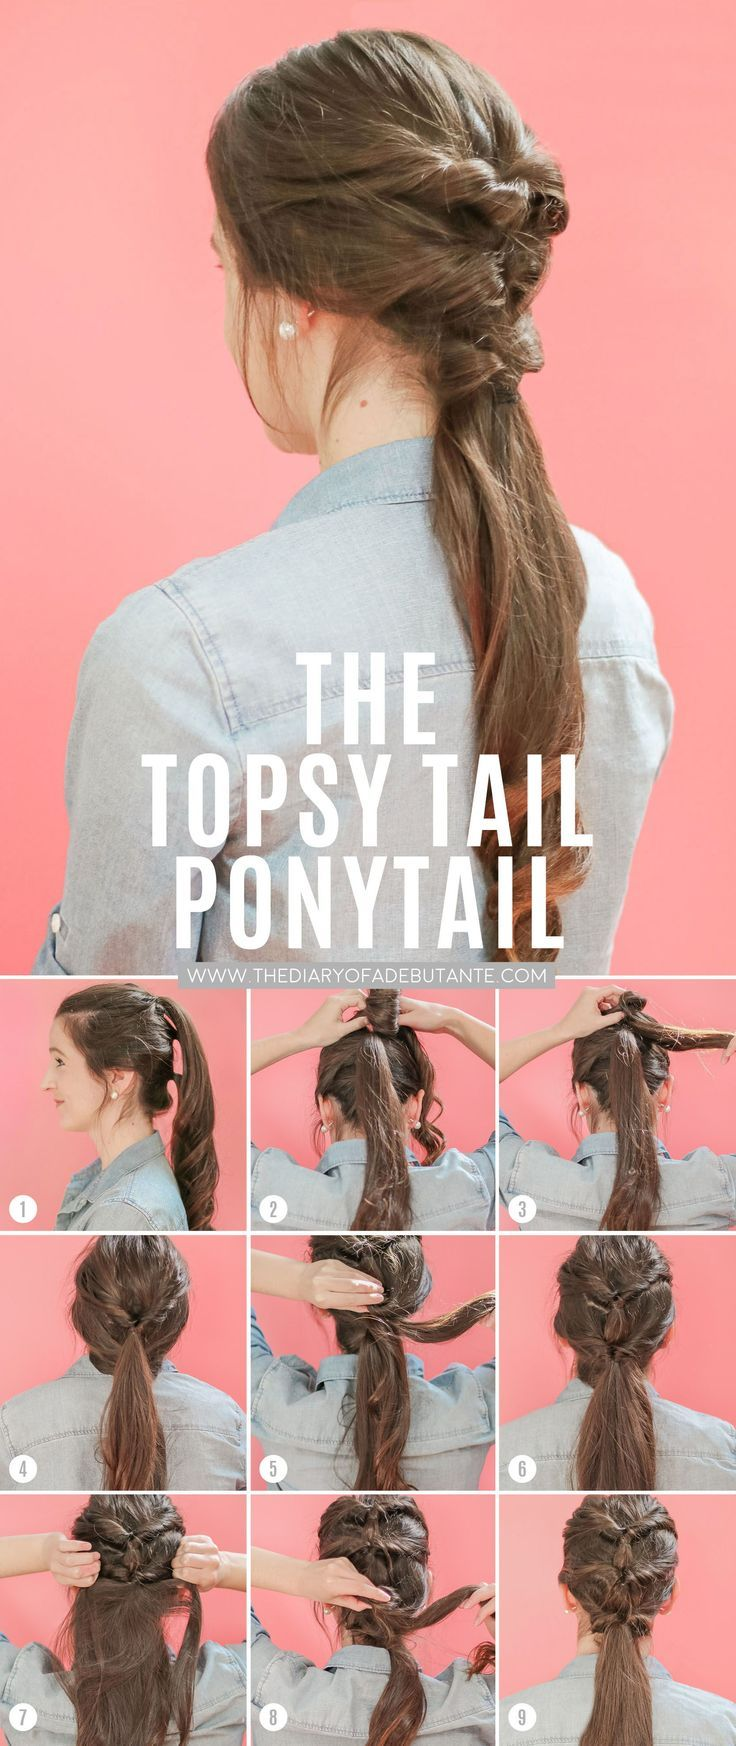 Dove Dermacare Review + Topsy Tail Ponytail Hair Tutorial for Long Hair